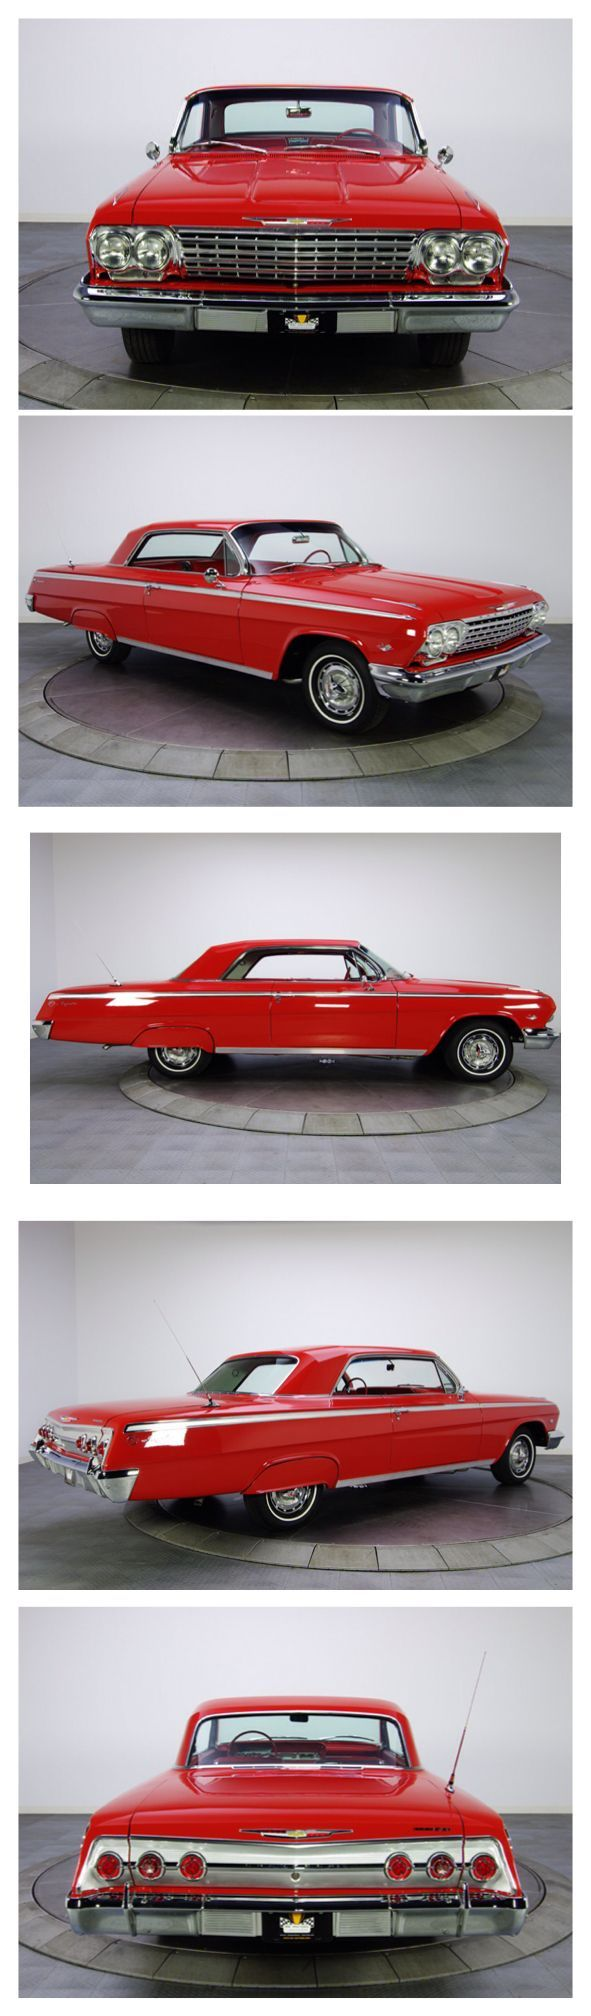 ❤ Visit ~ MACHINE Shop Café ❤ MACHINE Shop Café concepts are celebrated here. Follow Us and our Crowdfunding Campaign... October 2017 by purchasing your 'Gift Card Perks' at... www.indiegogo.com ❤ Best of Chevy @ MACHINE ❤ (1964 Chevrolet Impala SS)